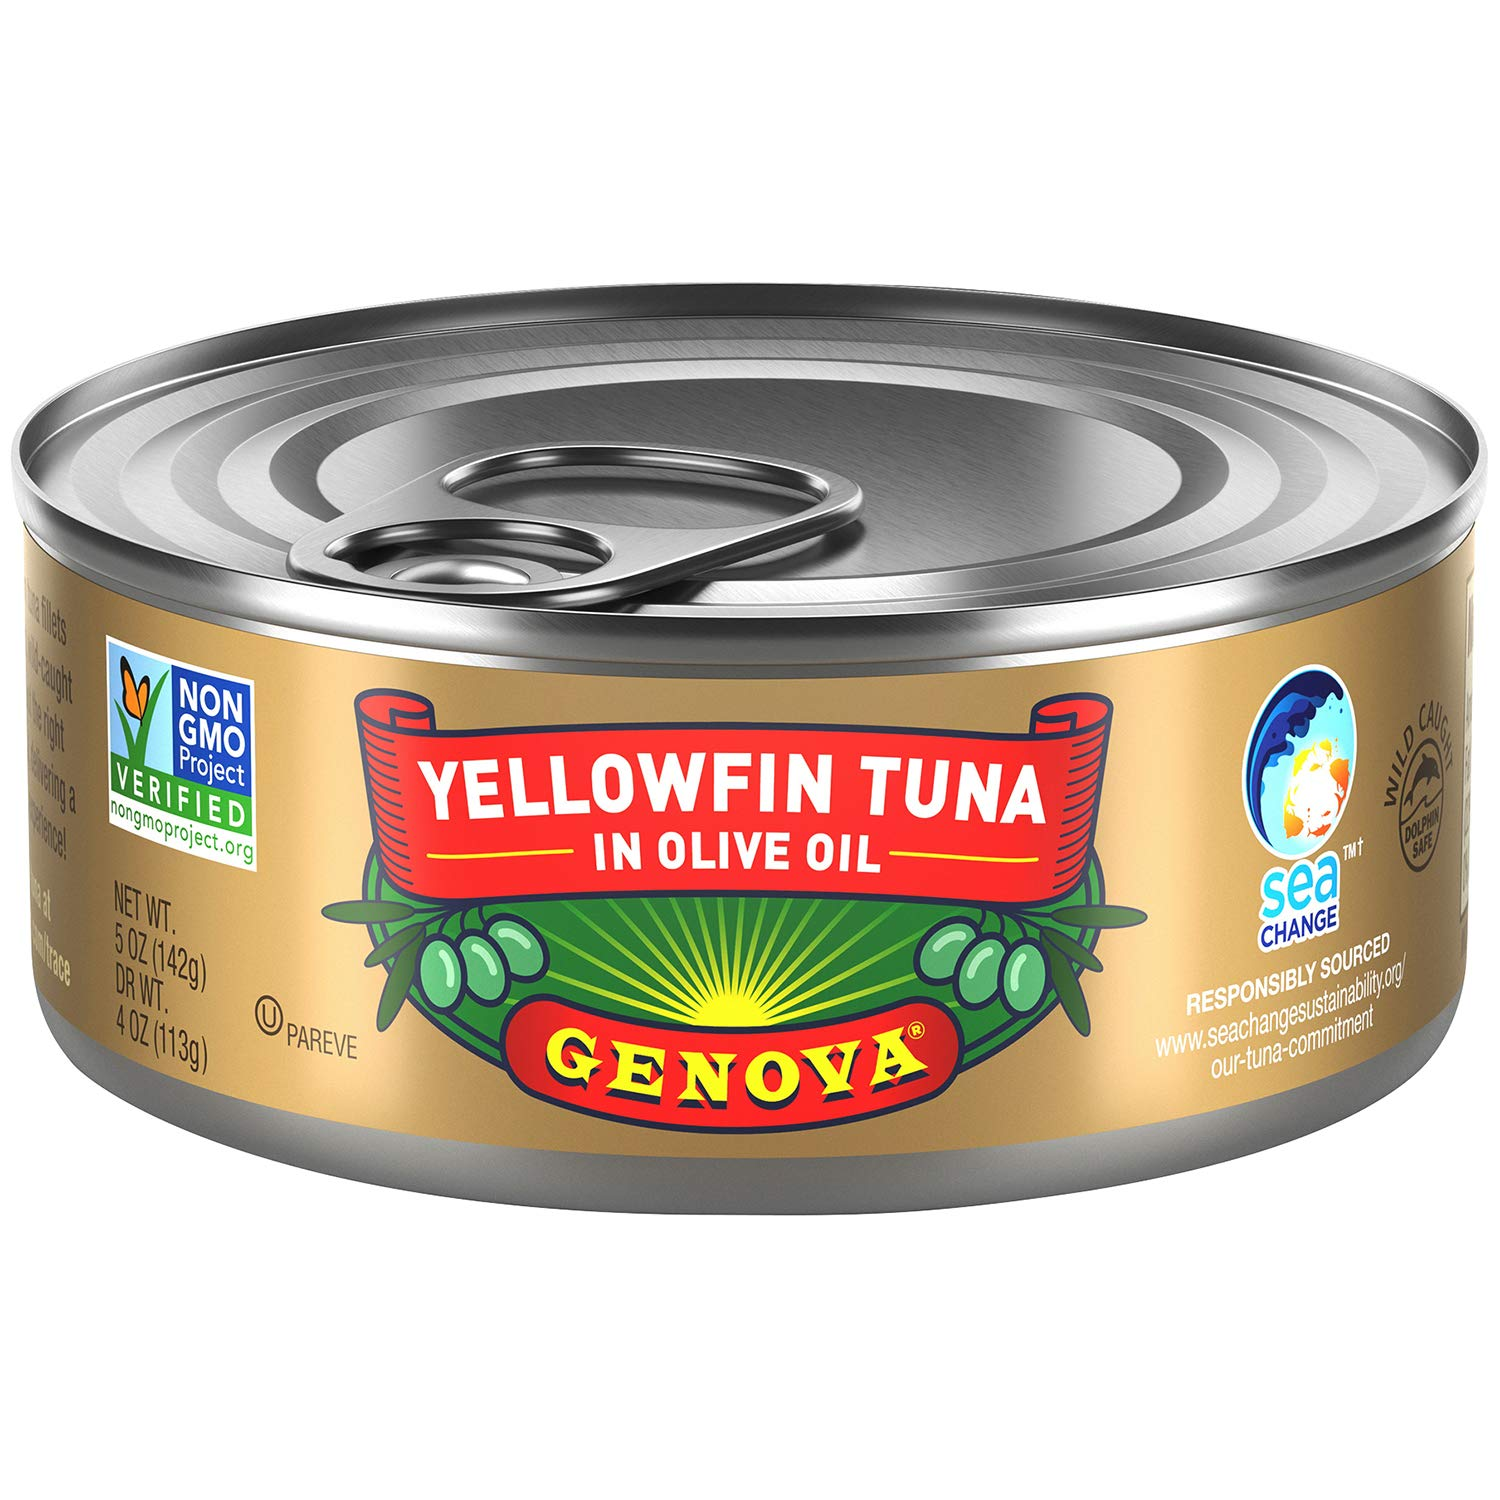 Genova Premium Yellowfin Tuna in Olive Oil, Wild Caught, Solid Light, 5 oz. Can (Pack of 24)